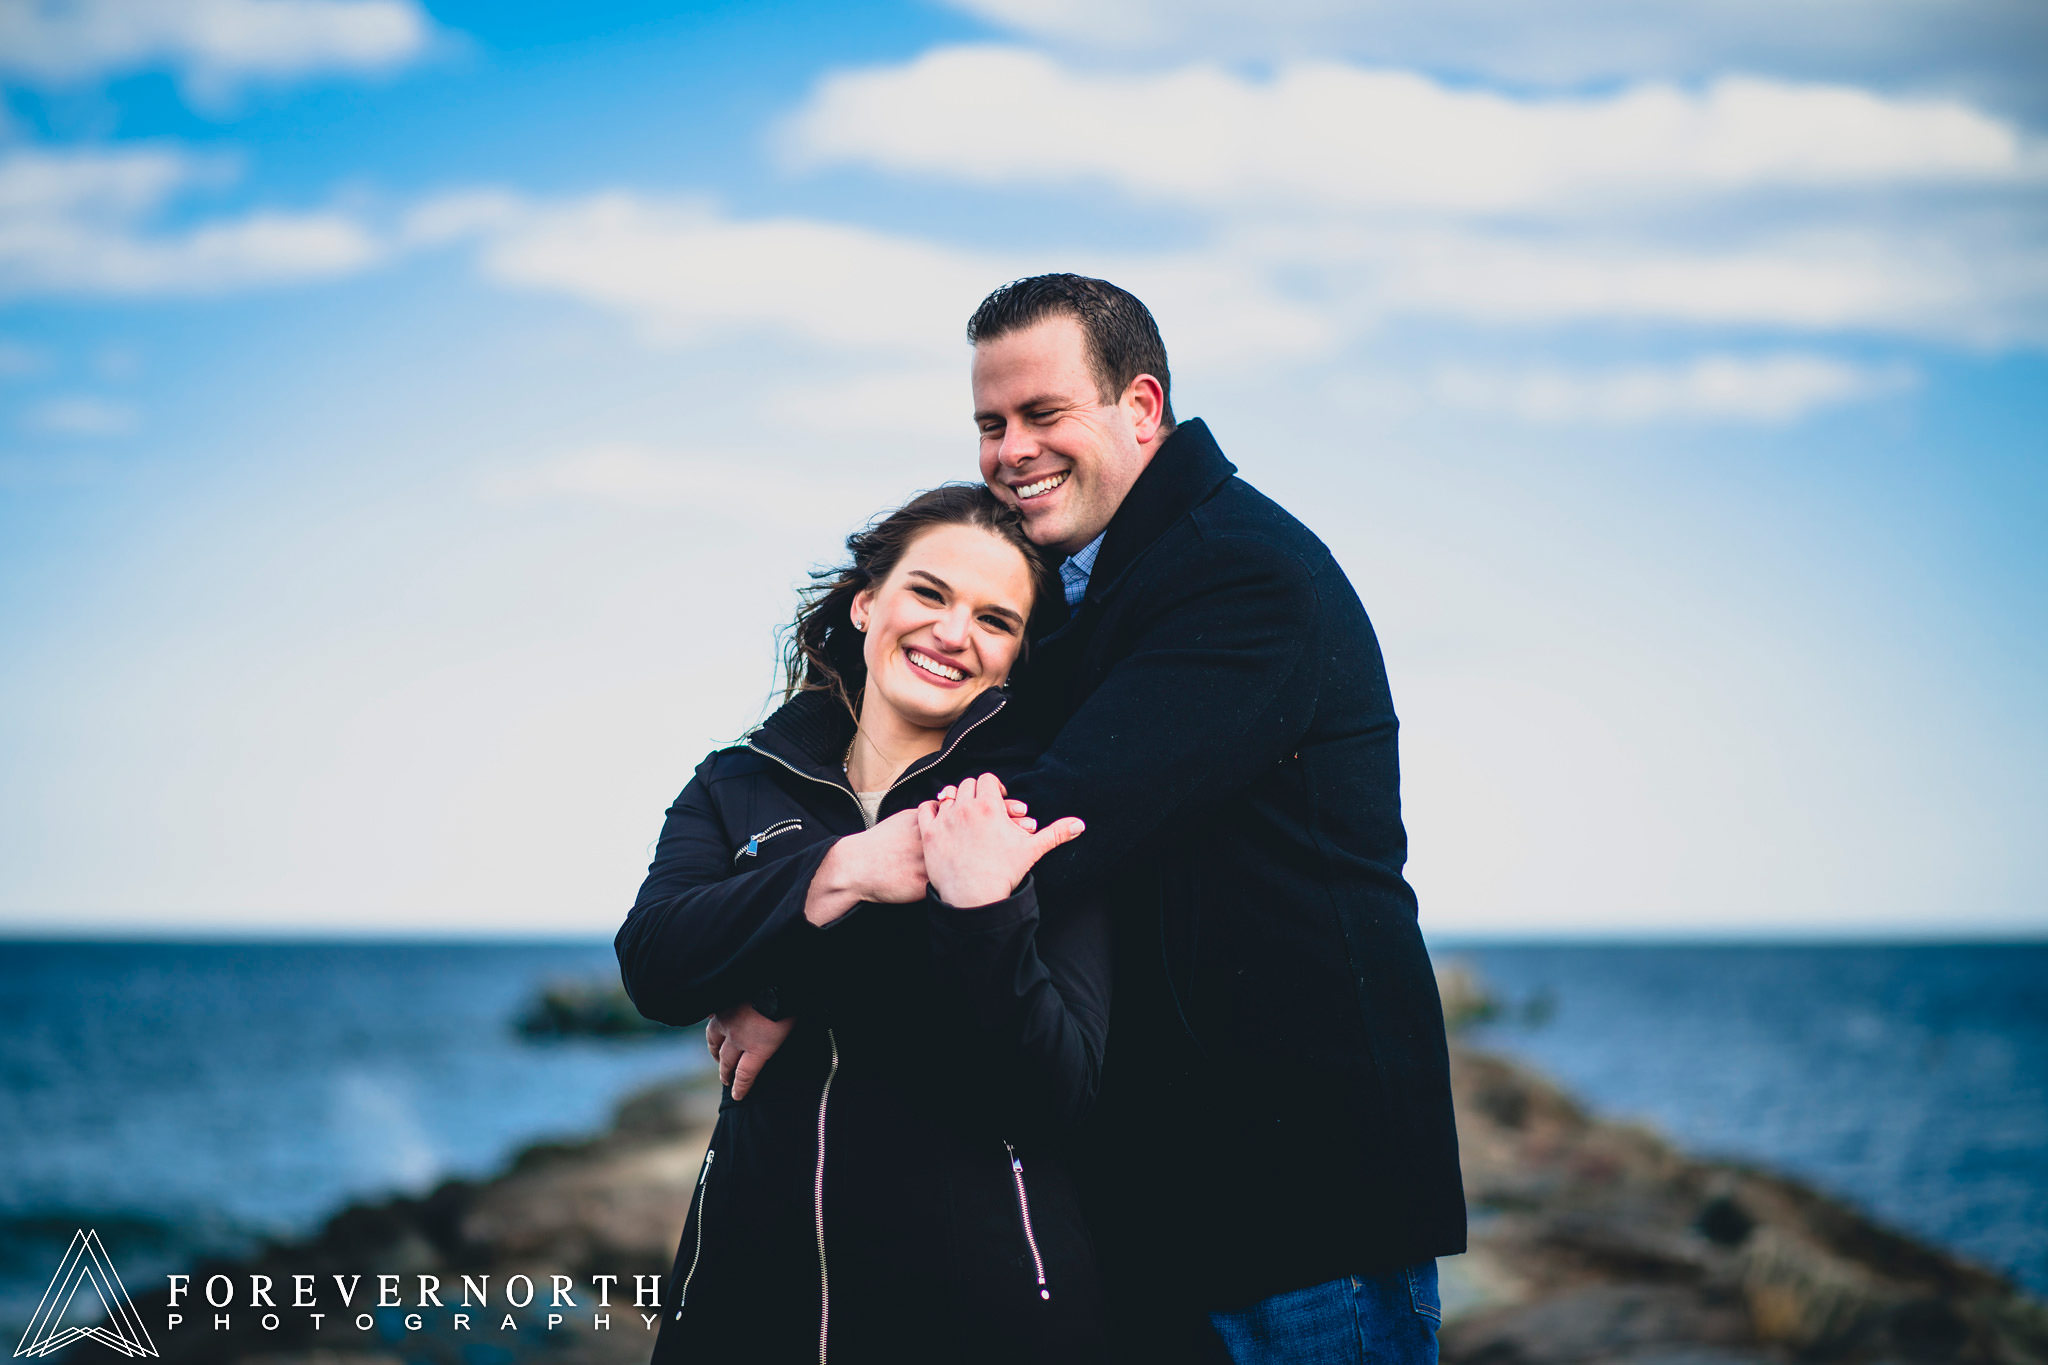 Schall-Forever-North-Photography-Proposal-Engagement-Photographer-Manasquan-Beach-31.JPG